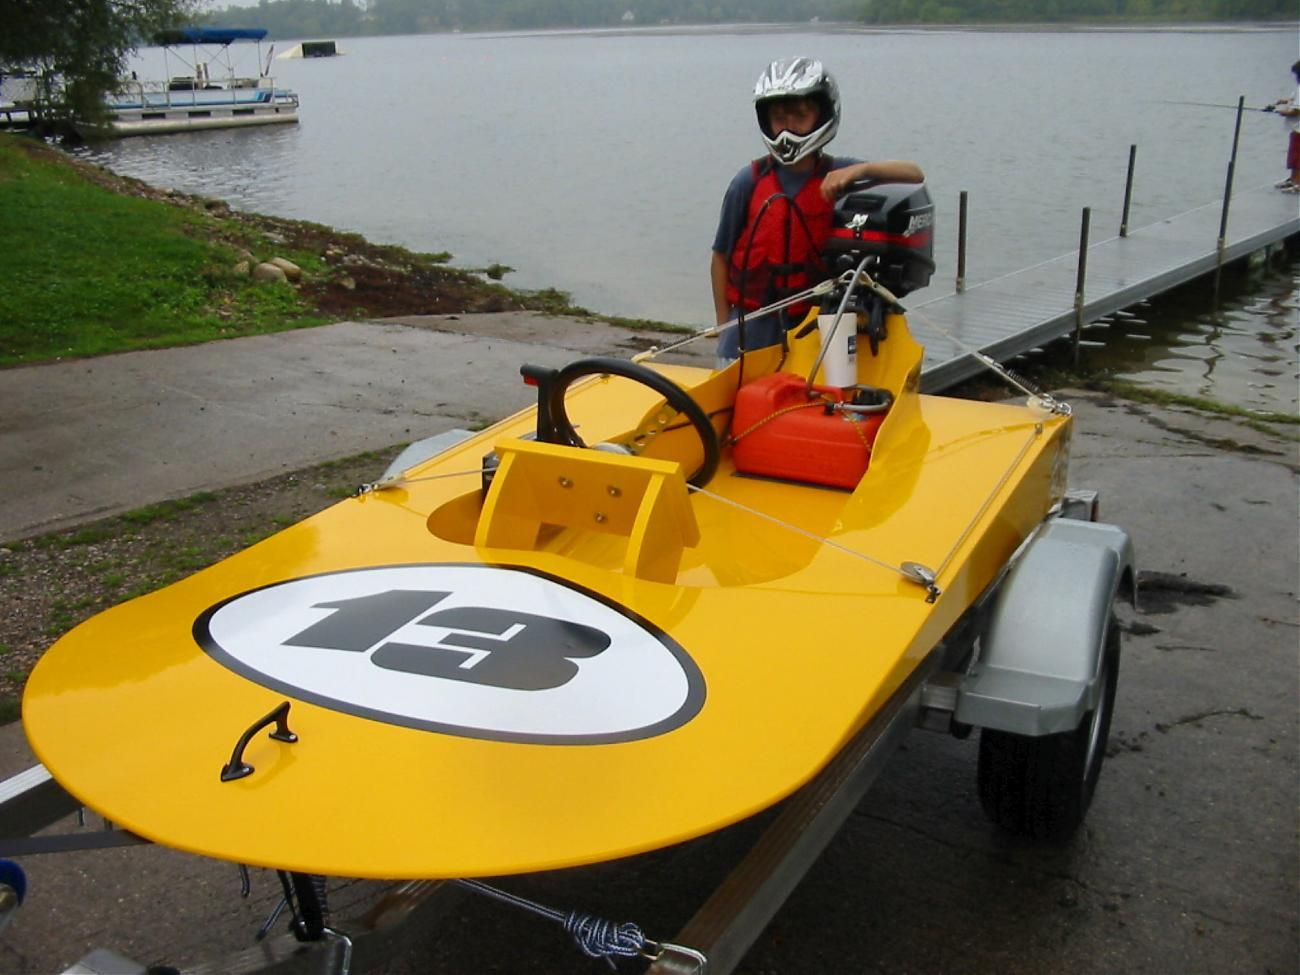 minimax boat racer - Google Search | Classic wooden boats ...